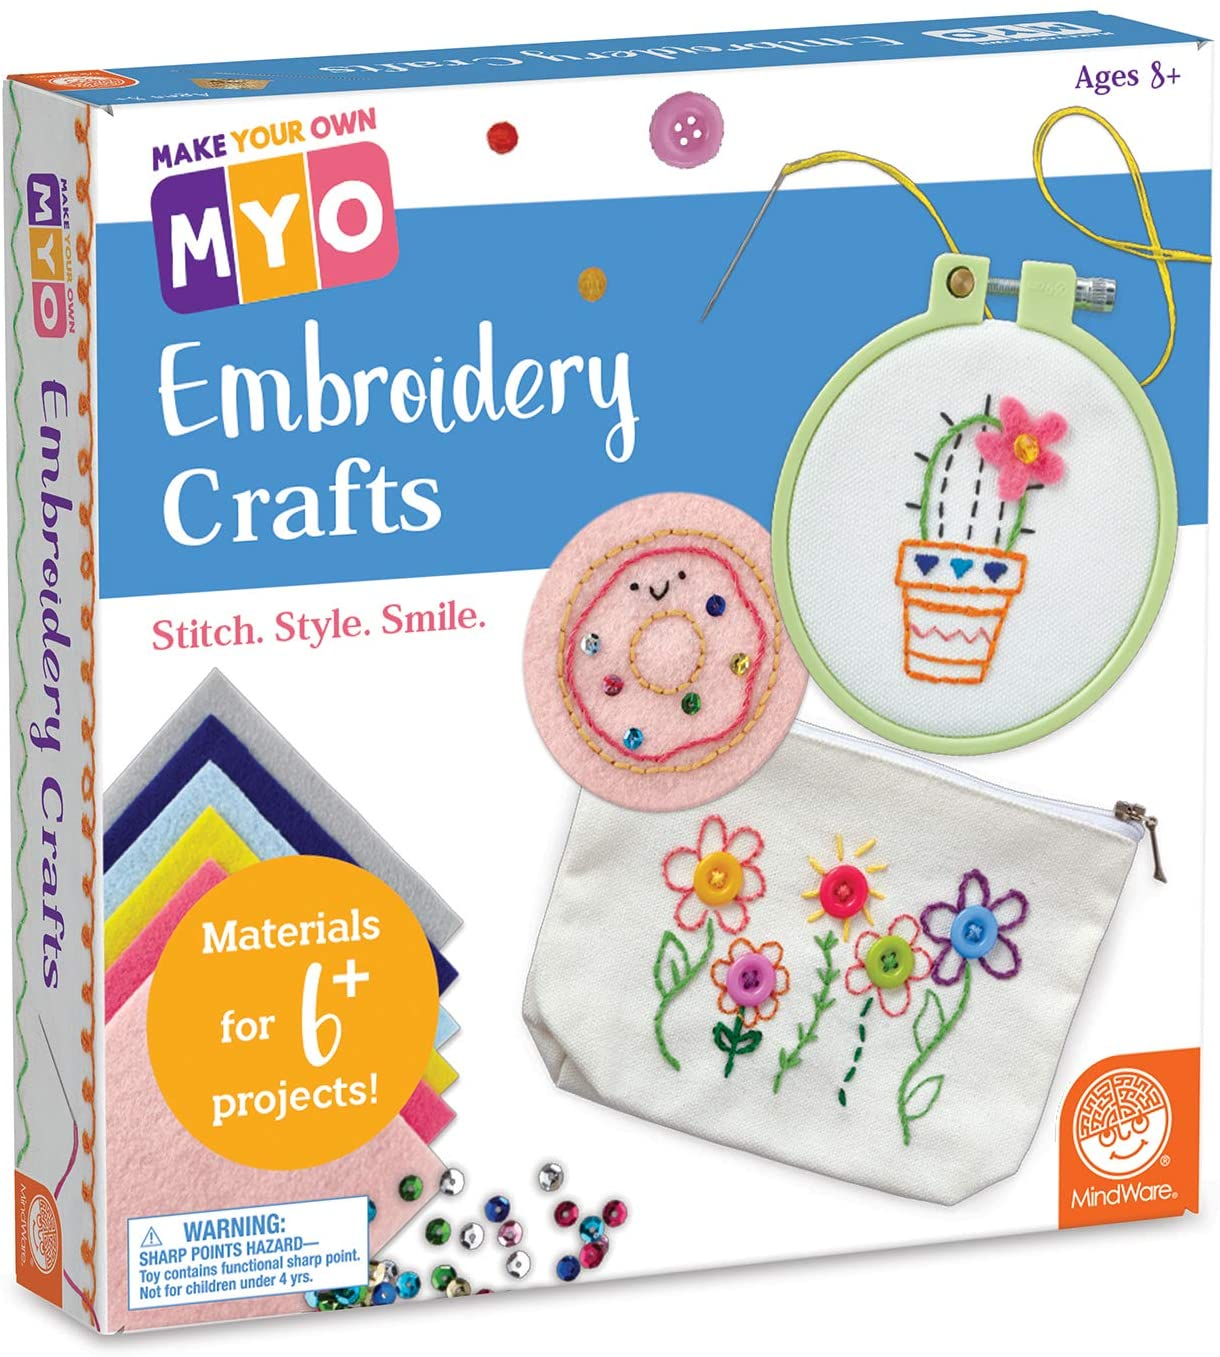 Make Your Own Embroidery Crafts